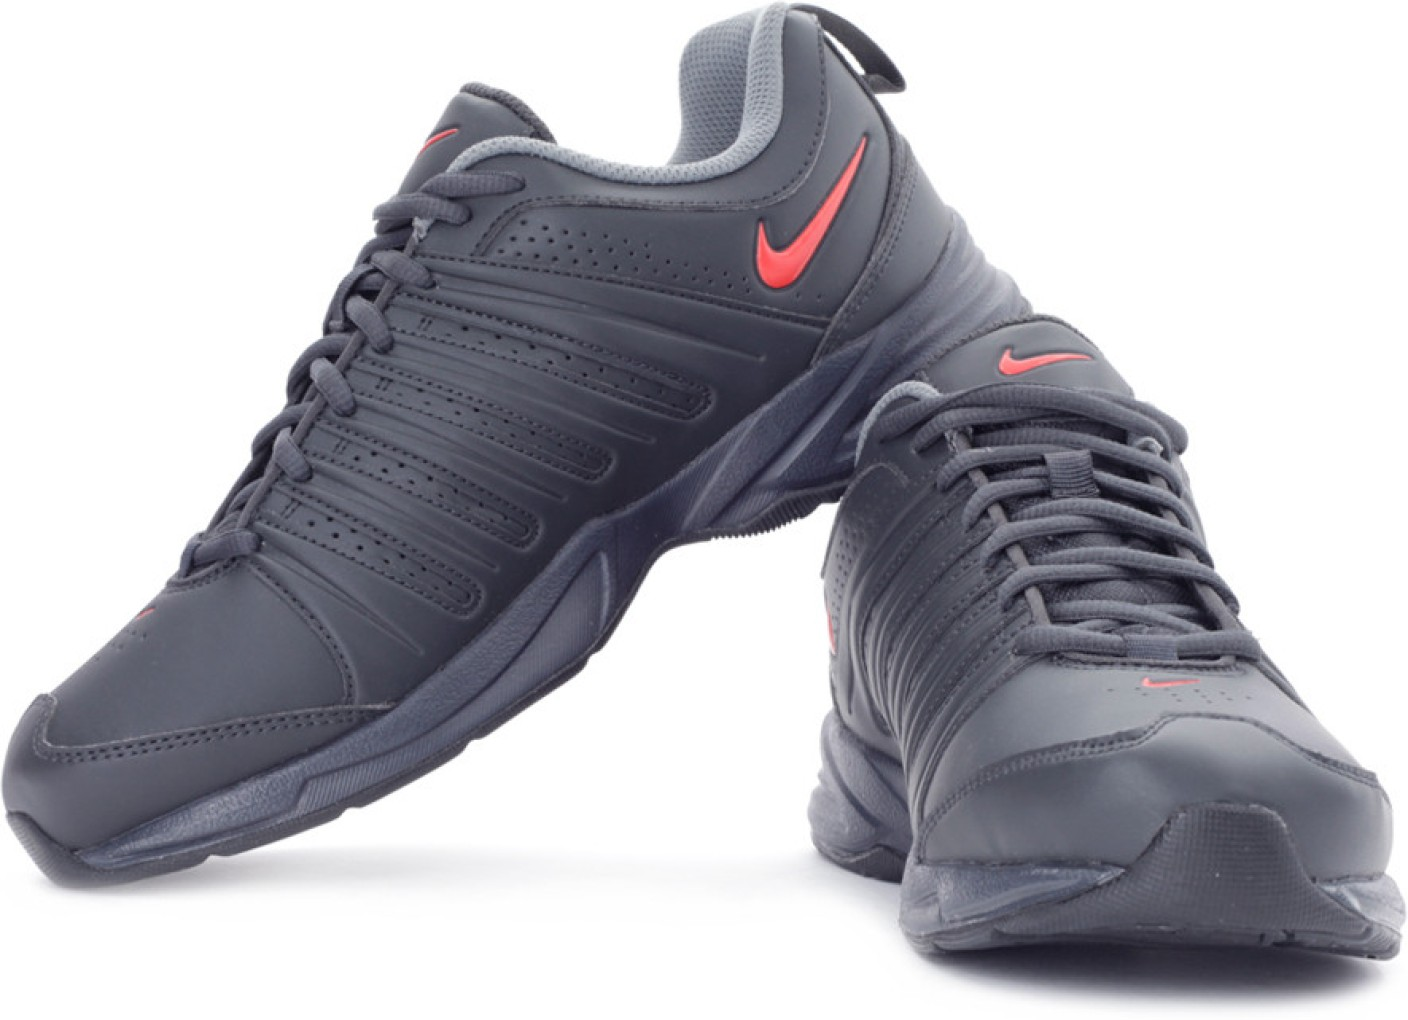 Nike T Lite X Sl Training Amp Gym Shoes For Men Buy Black Red Color Nike T Lite X Sl Training